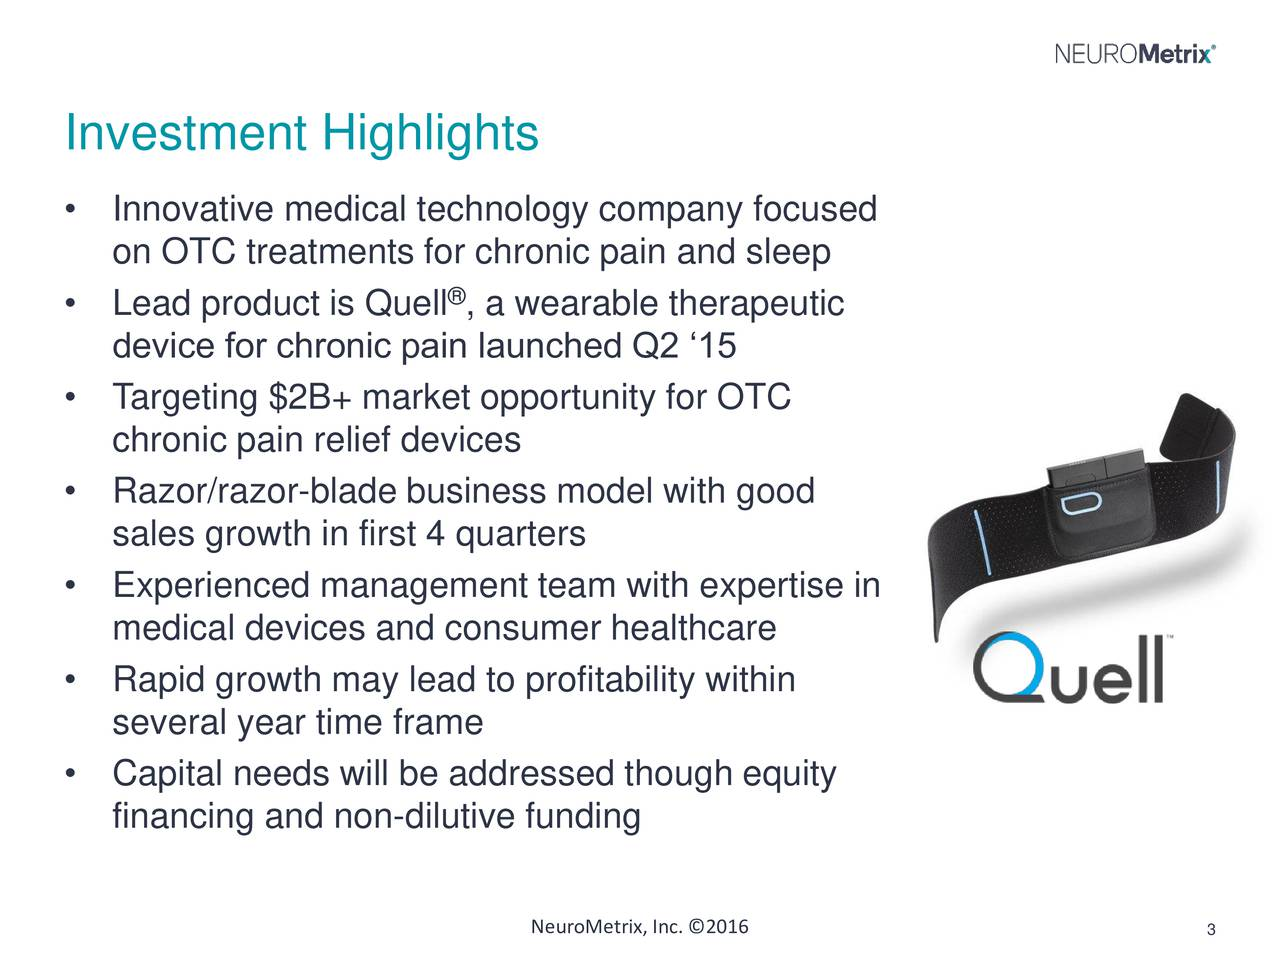 Innovative medical technology company focused on OTC treatments for chronic pain and sleep Lead product is Quell , a wearable therapeutic device for chronic pain launched Q2 15 Targeting $2B+ market opportunity for OTC chronic pain relief devices Razor/razor-blade business model with good sales growth in first 4 quarters Experienced management team with expertise in medical devices and consumer healthcare Rapid growth may lead to profitability within several year time frame Capital needs will be addressed though equity financing and non-dilutive funding NeuroMetrix, Inc. 2016 3